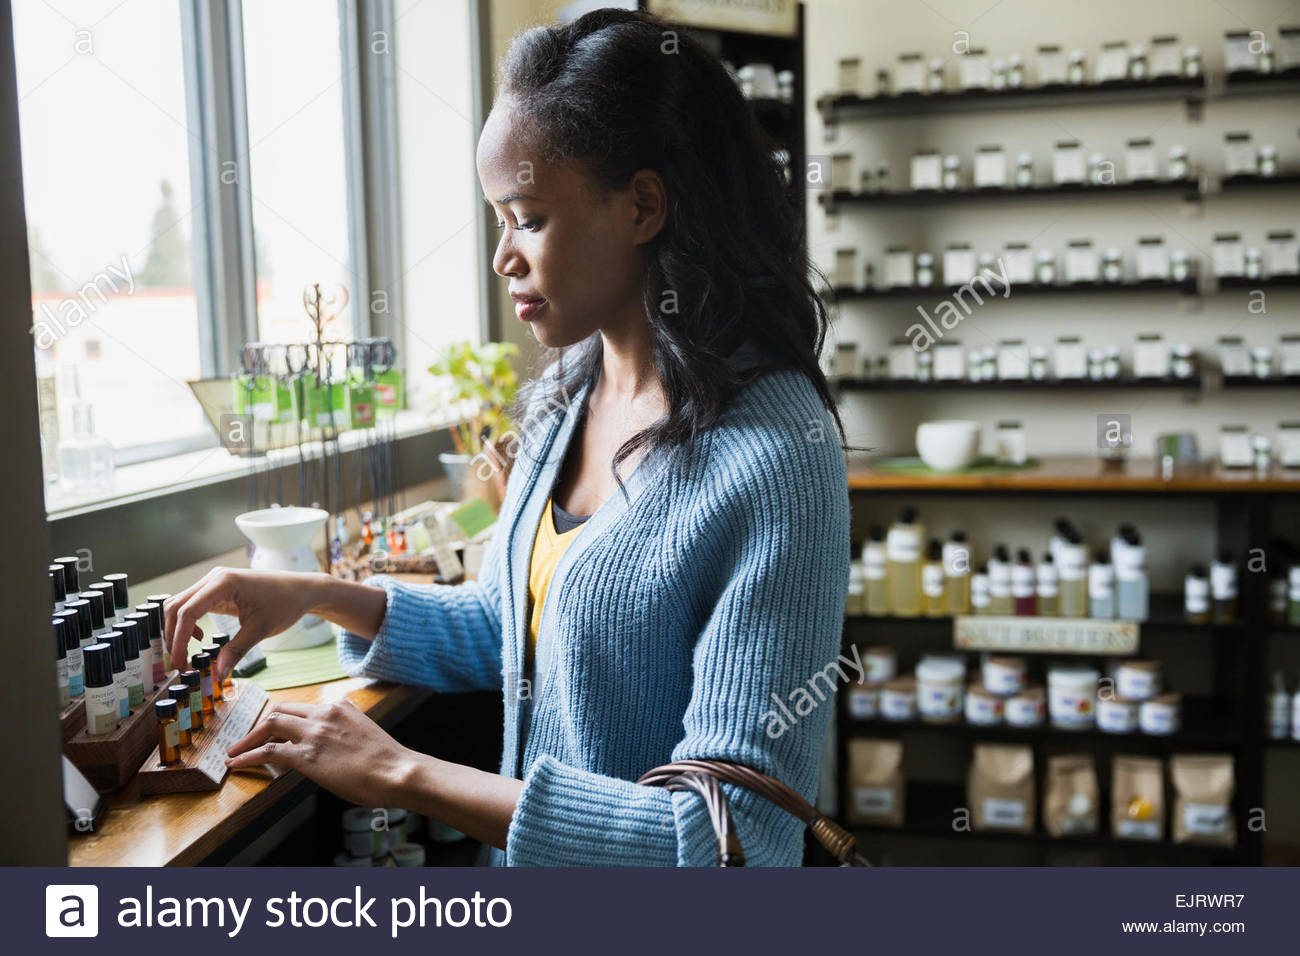 Woman browsing essential oils in apothecary shop - Stock Image